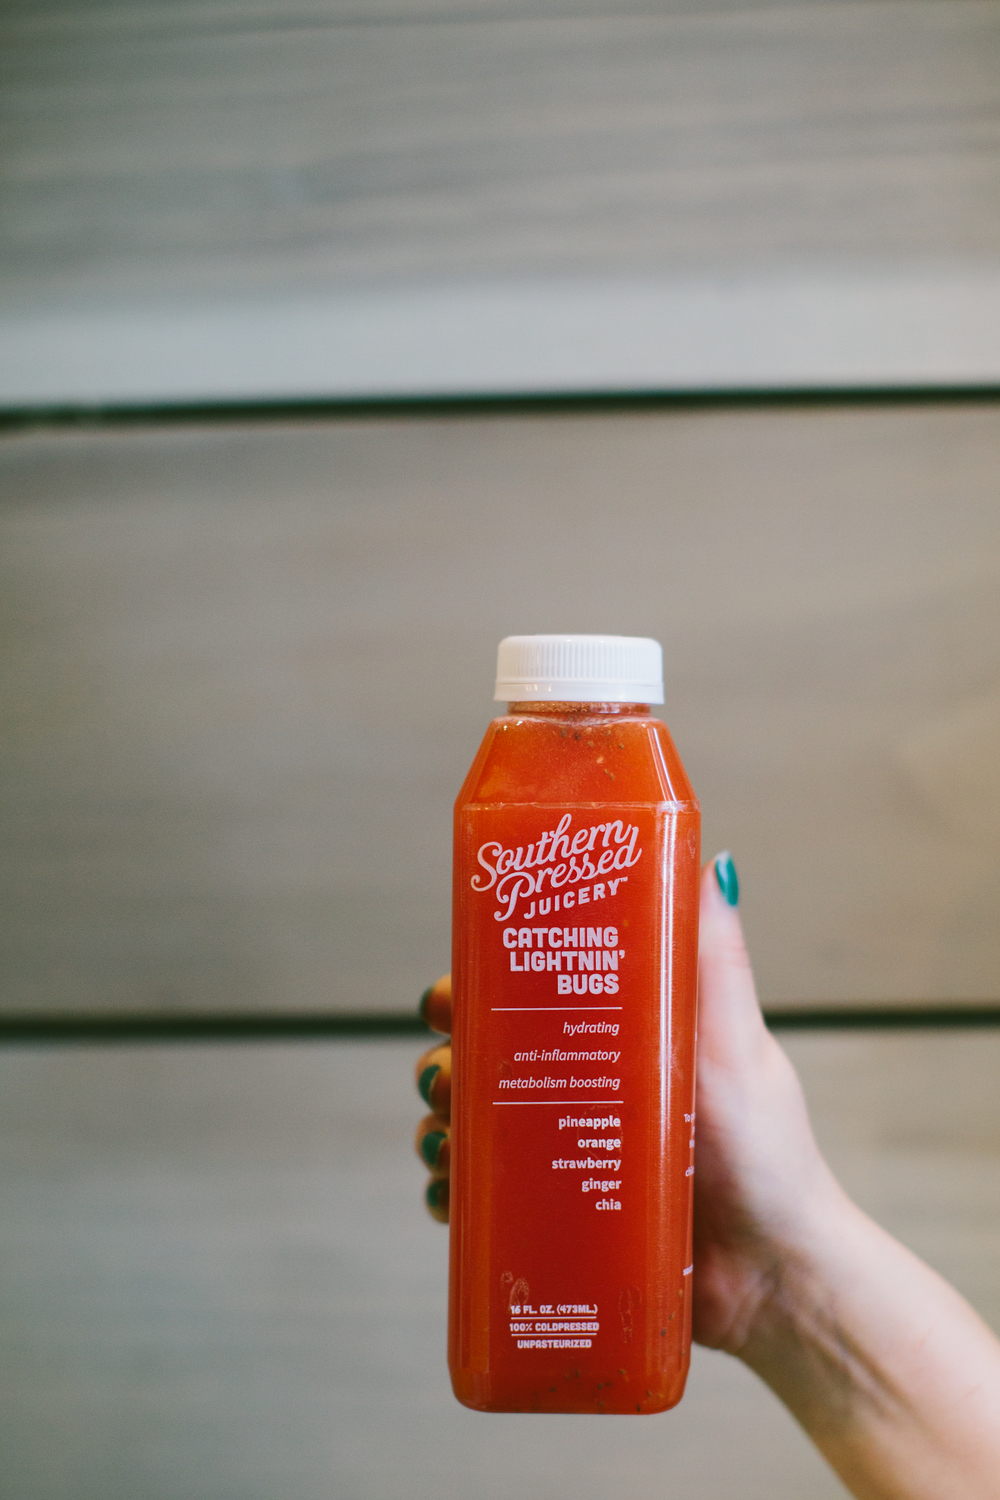 AshevilleFolk Greenville South Carolina City Guide: Southern Pressed Juicery- Catching Lightnin Bugs